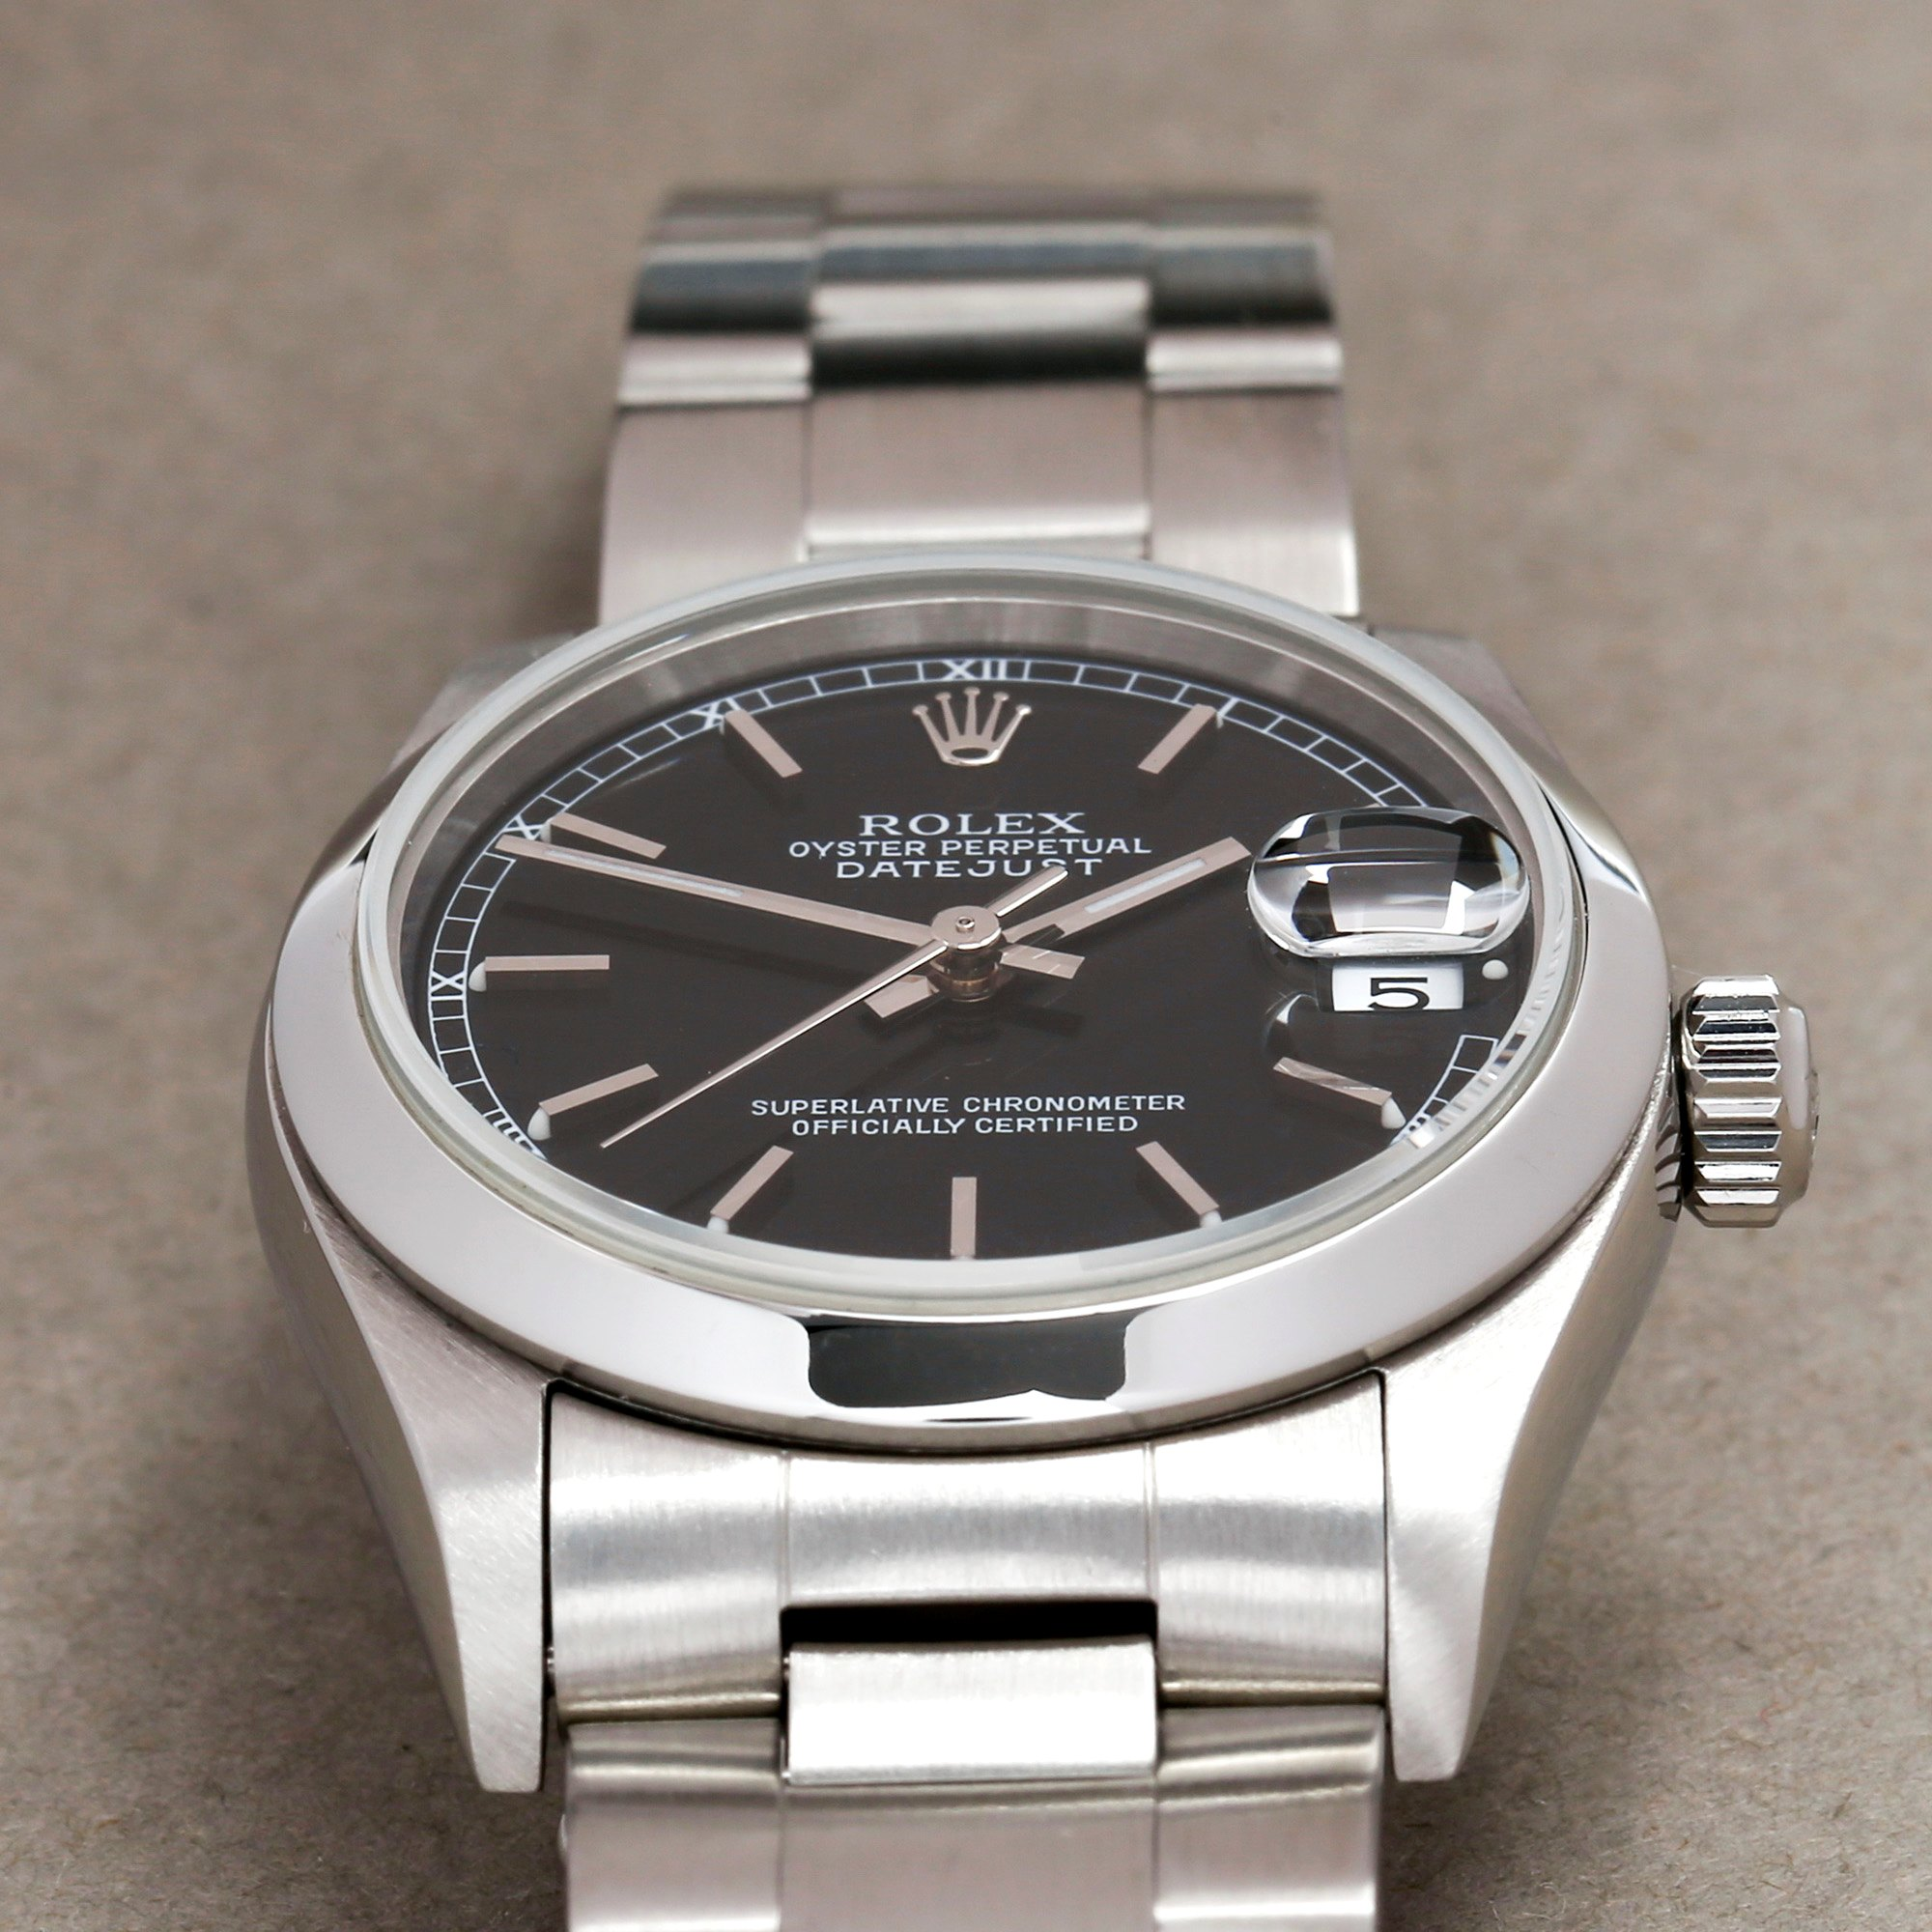 Rolex Datejust 31 78240 Ladies Stainless Steel Watch - Image 8 of 10